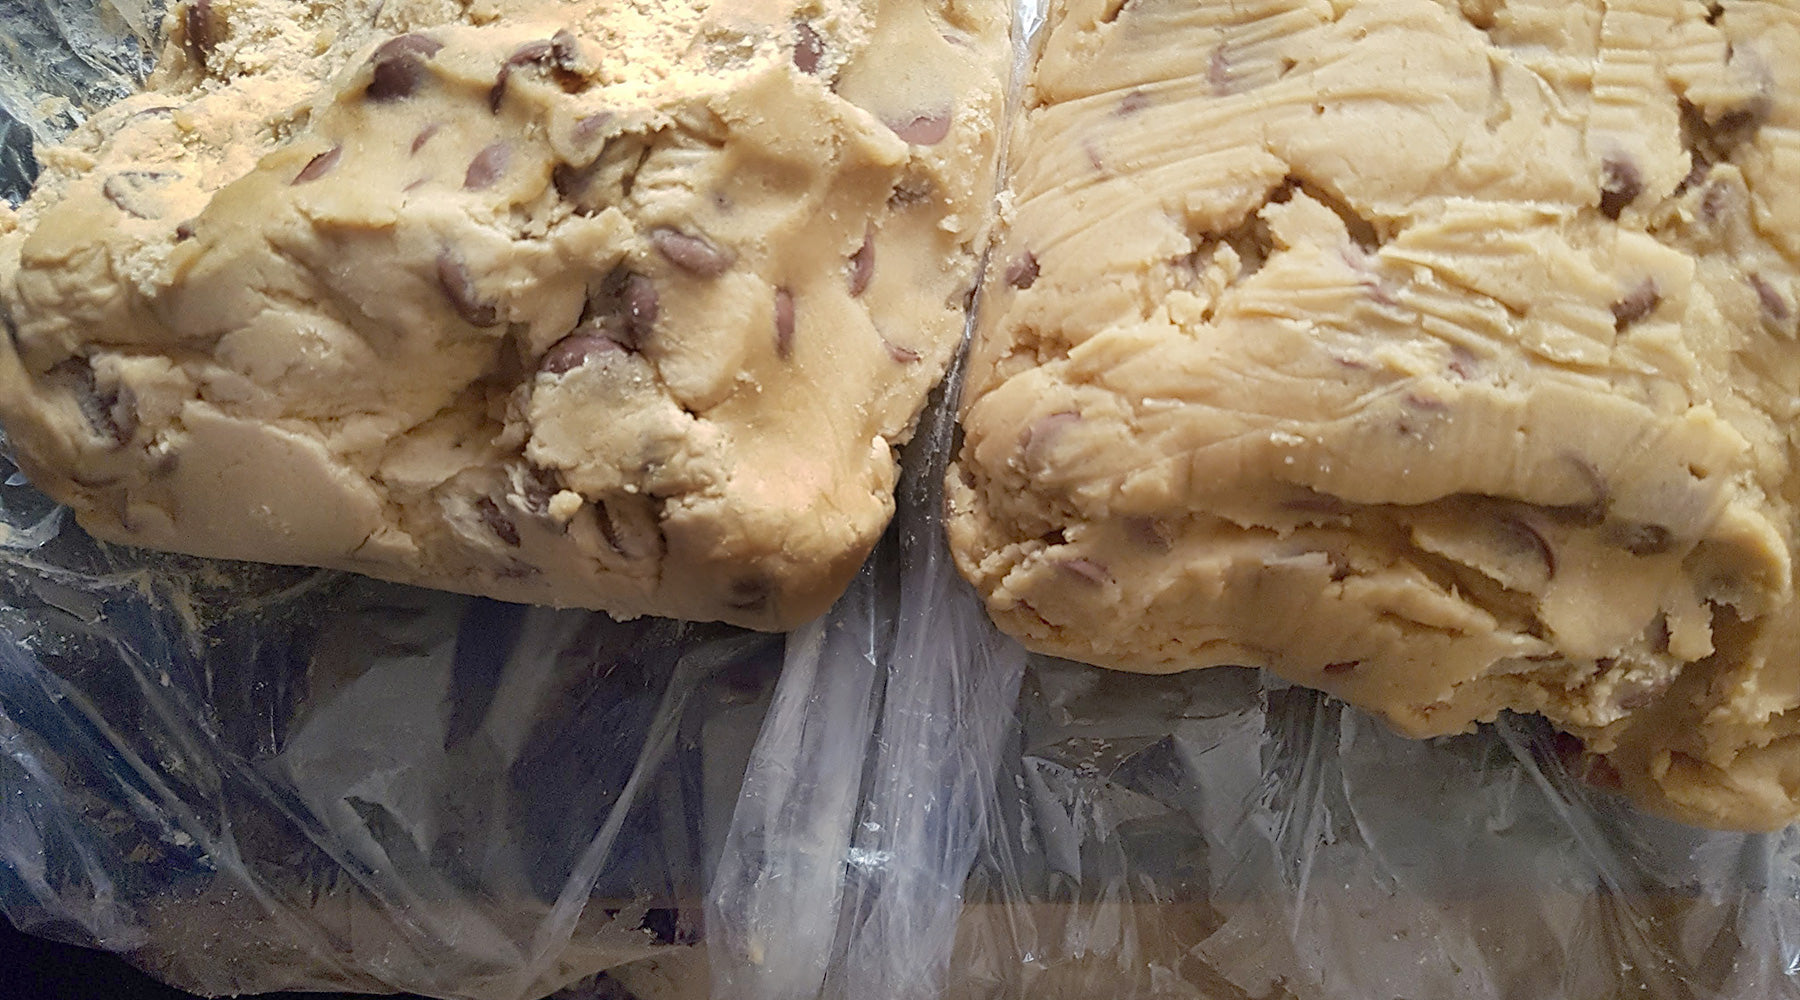 Two batches of chocolate chip cookie dough wrapped in plastic